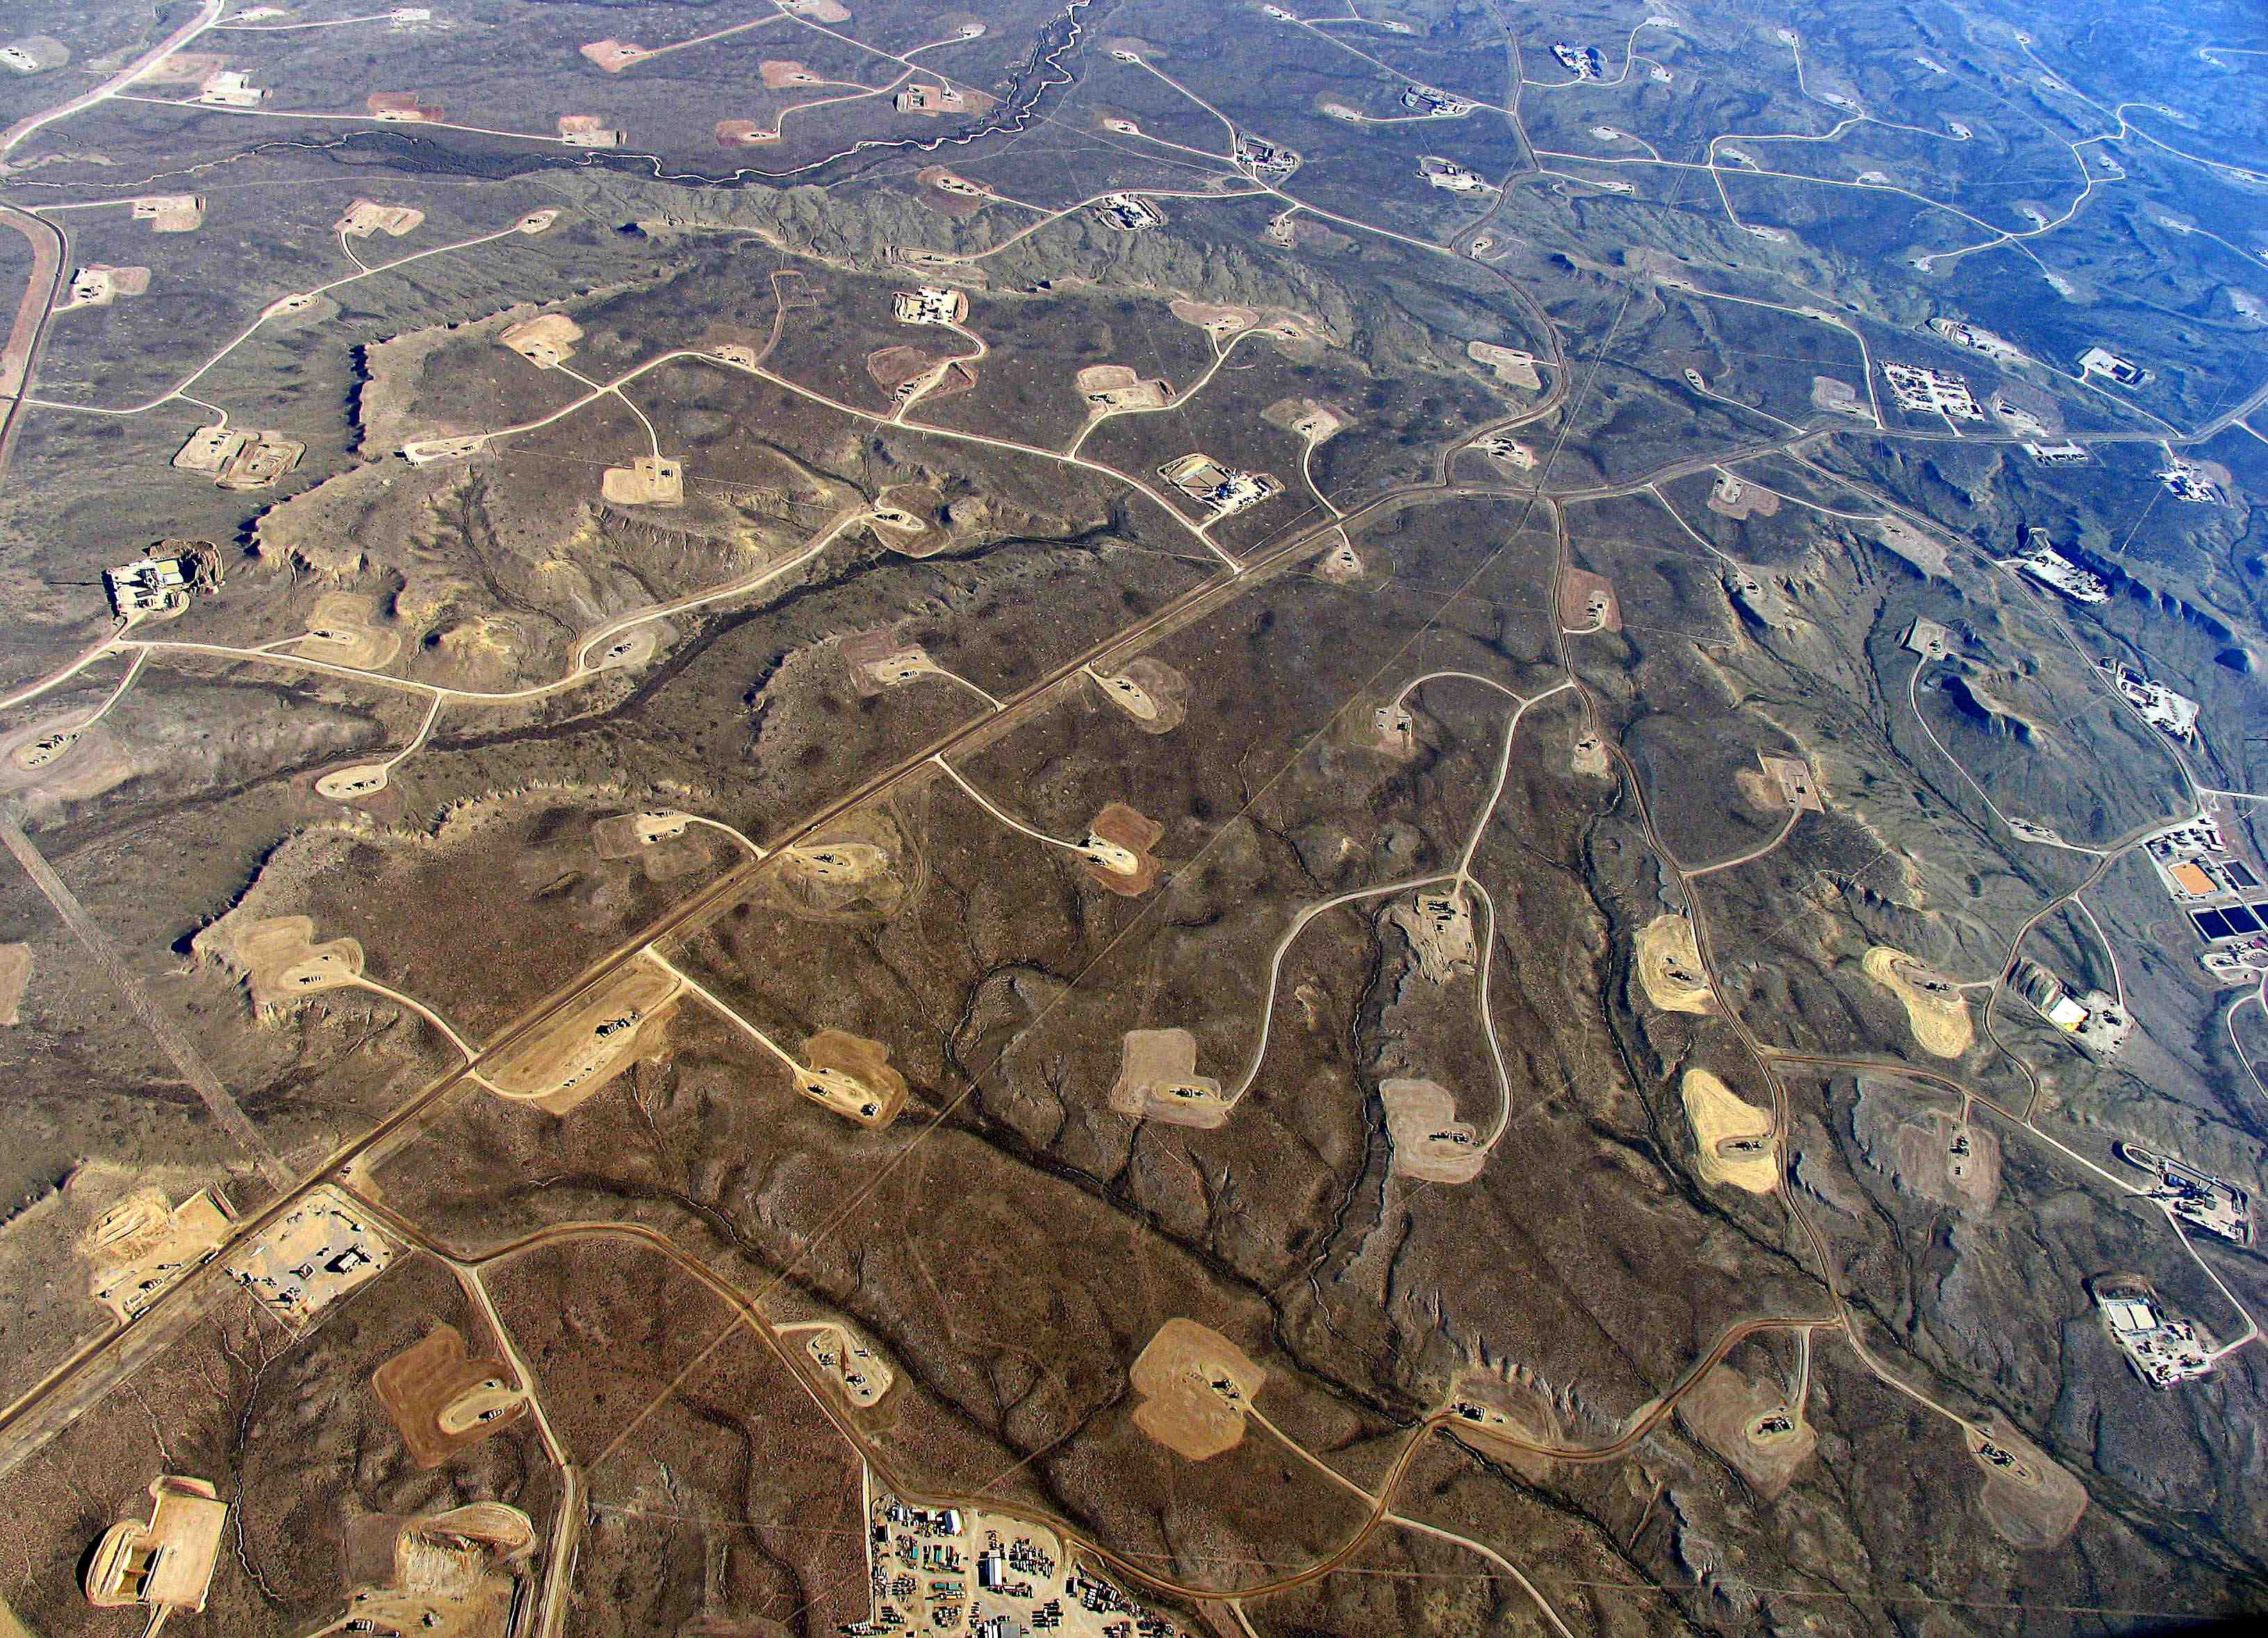 Shale-fracking-dense-web-roads-pipeline-and-well-pads-turn-continuous-forest-and-grasslands-into-fragmented-islands..jpg